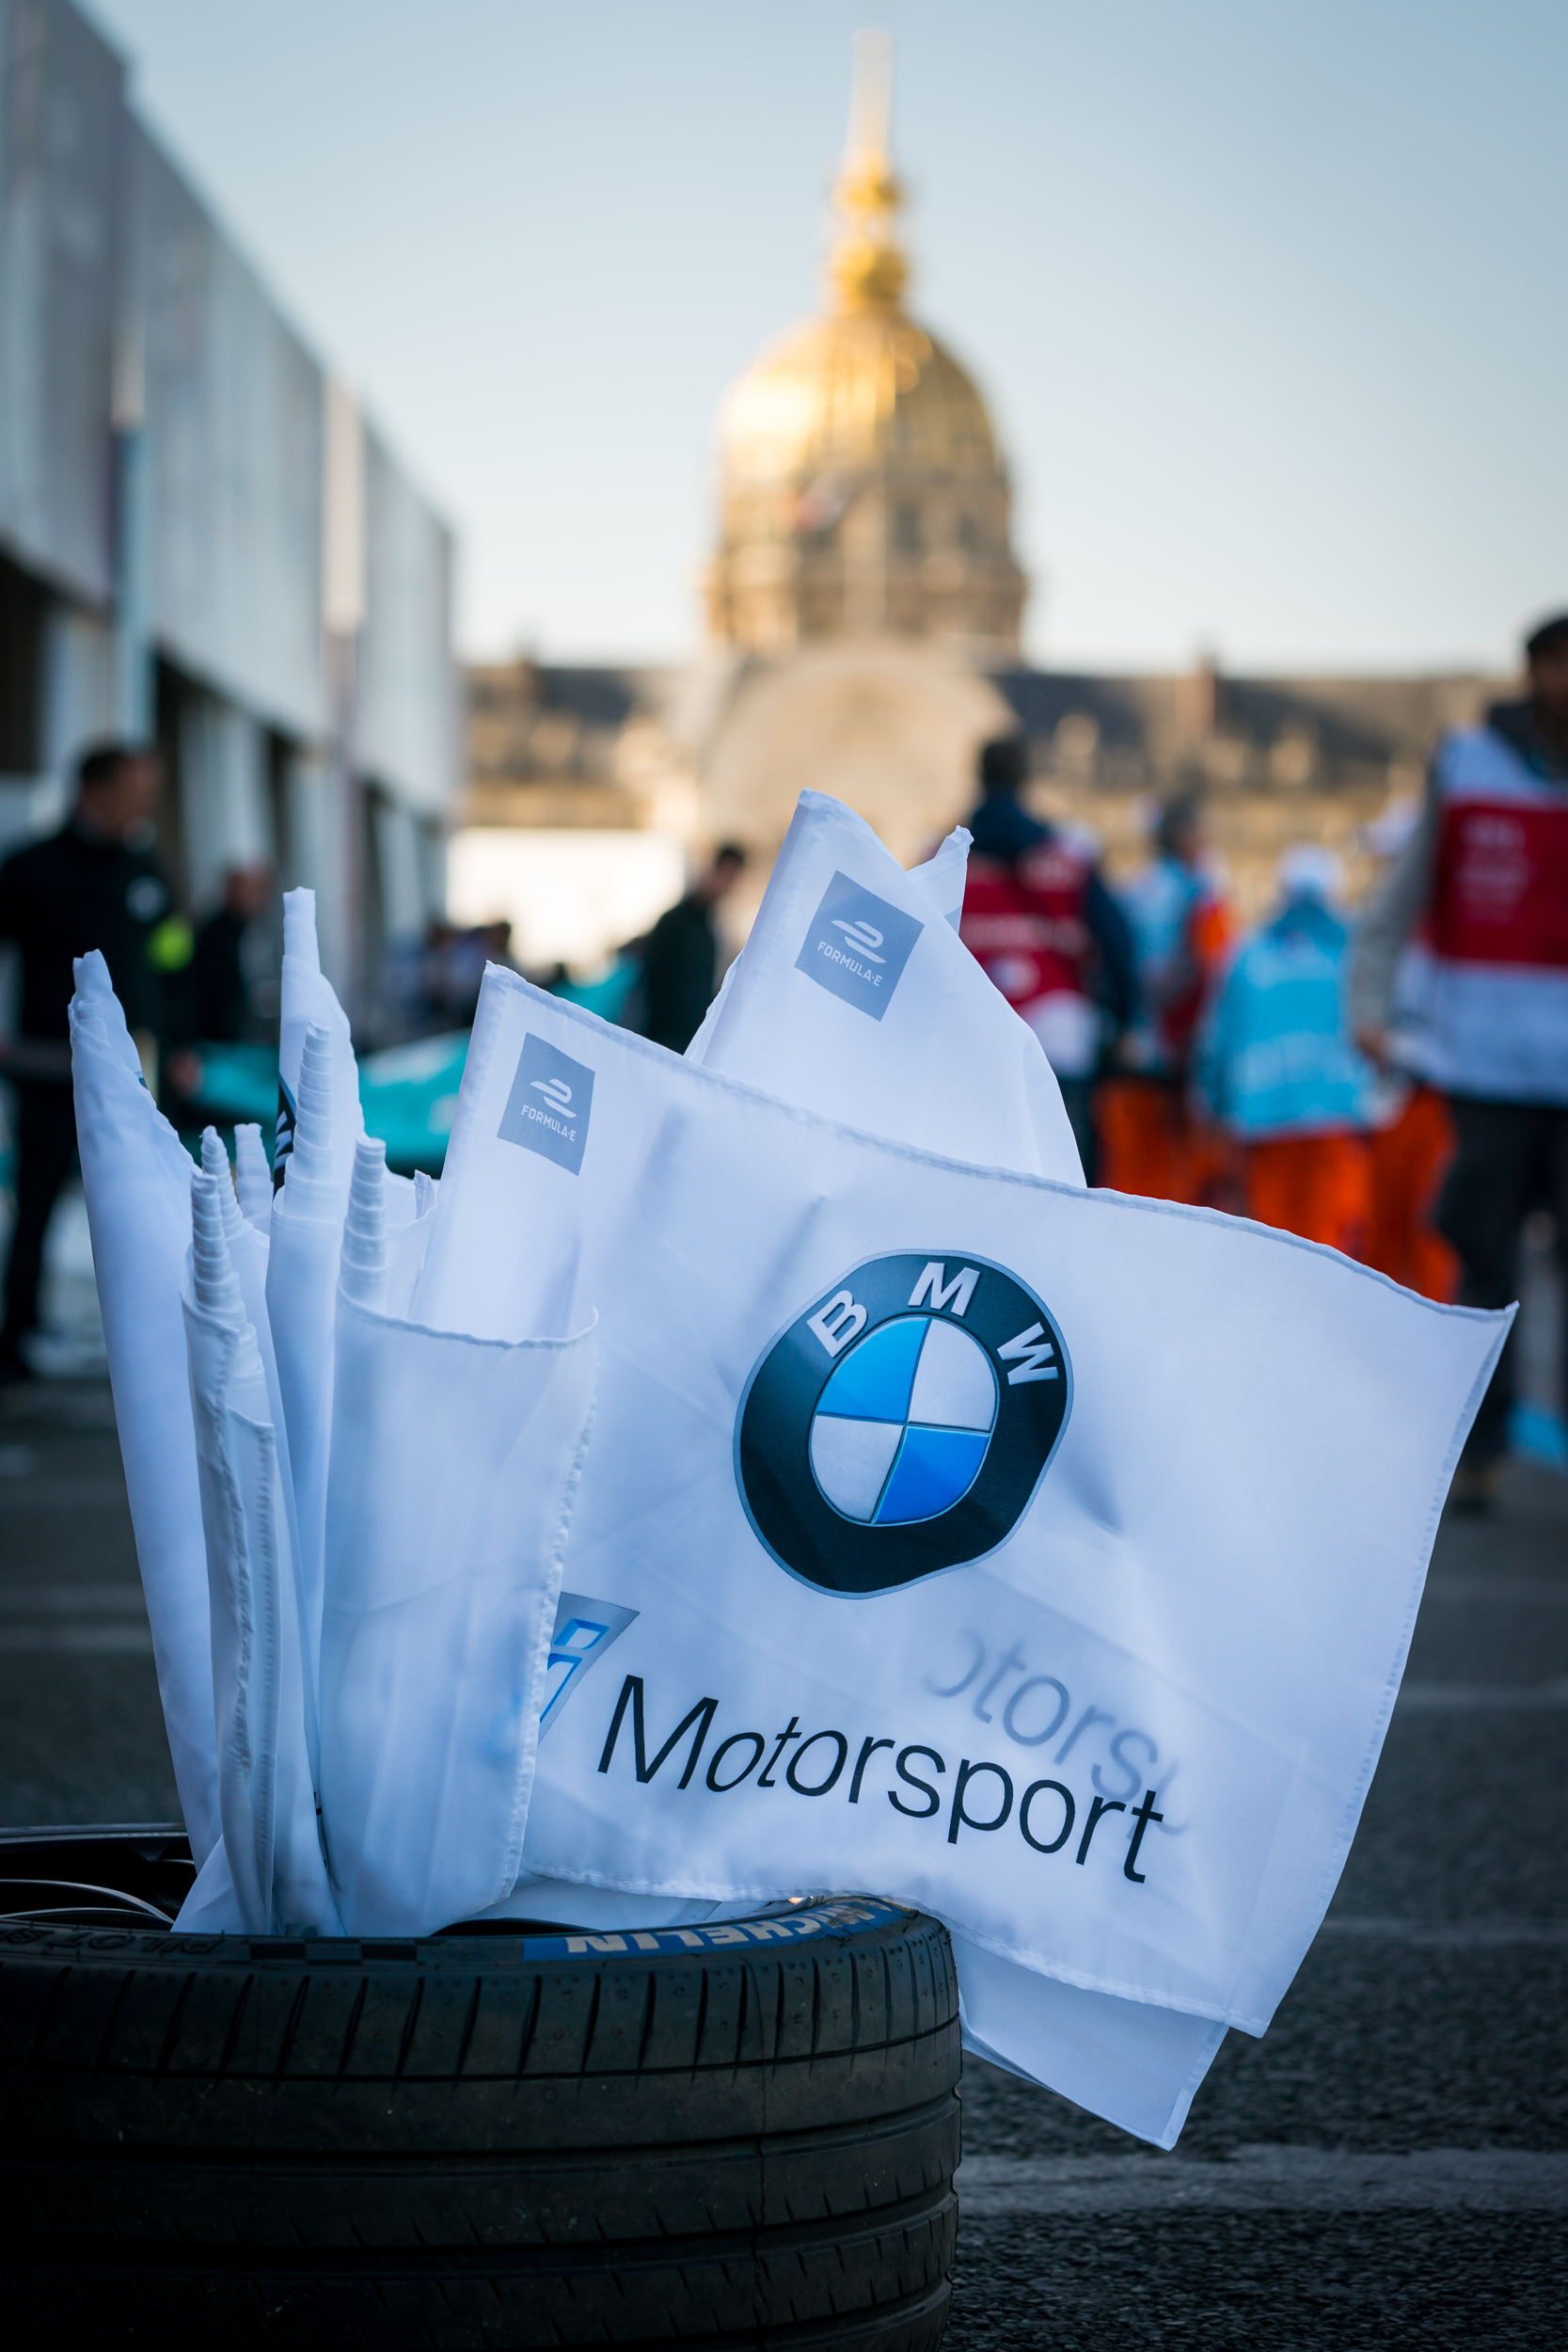 BMW i_Formula E Paris 2019_26&27-04-19_Florian Leger_SHARE & DARE_HD_N°-237.jpg